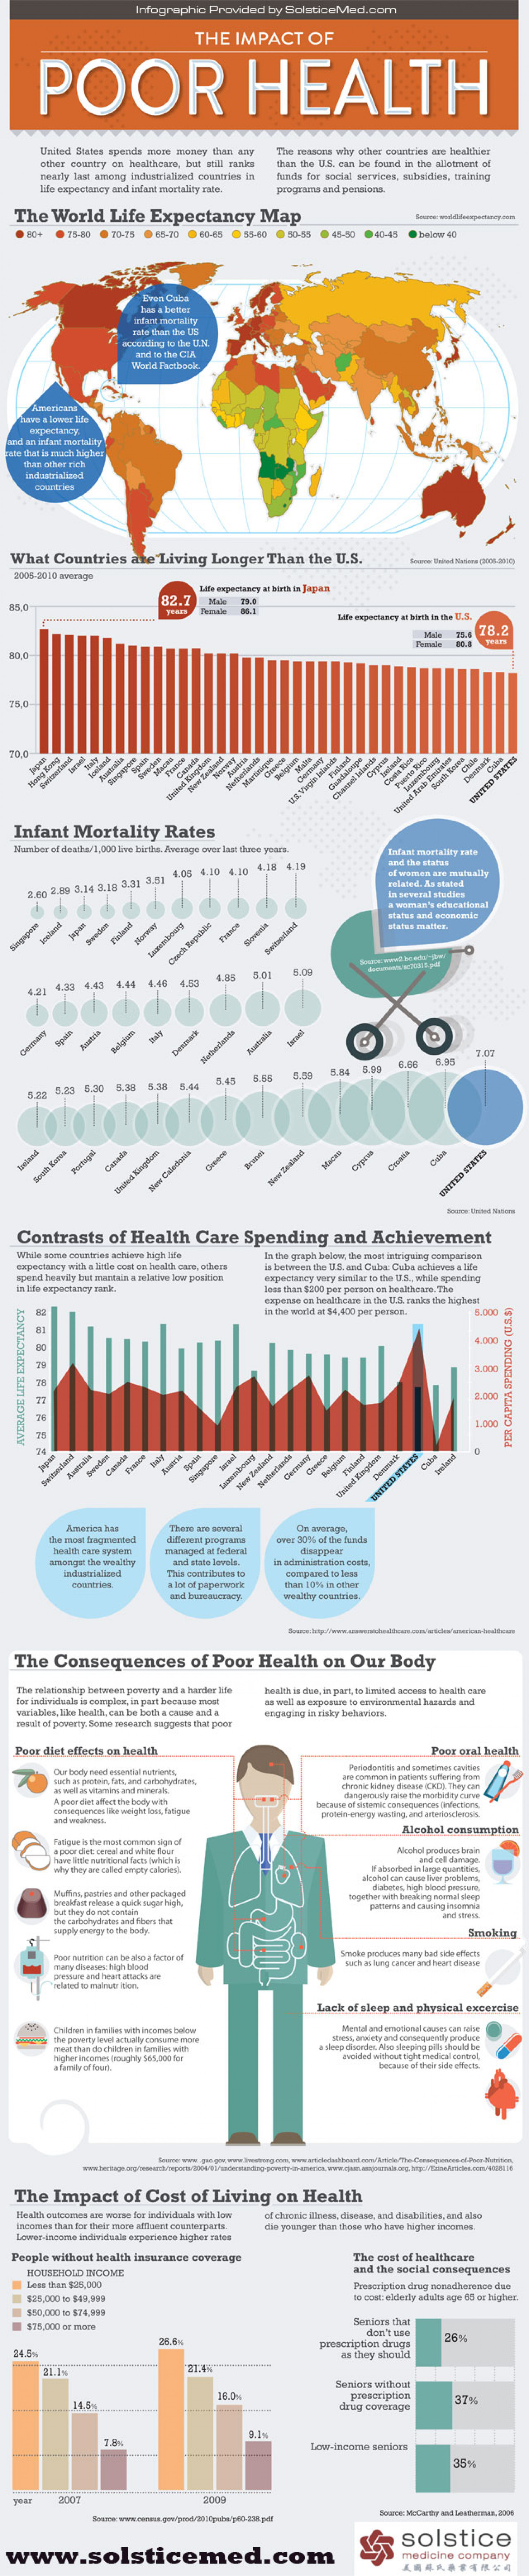 The Impact of Poor Health on America Infographic